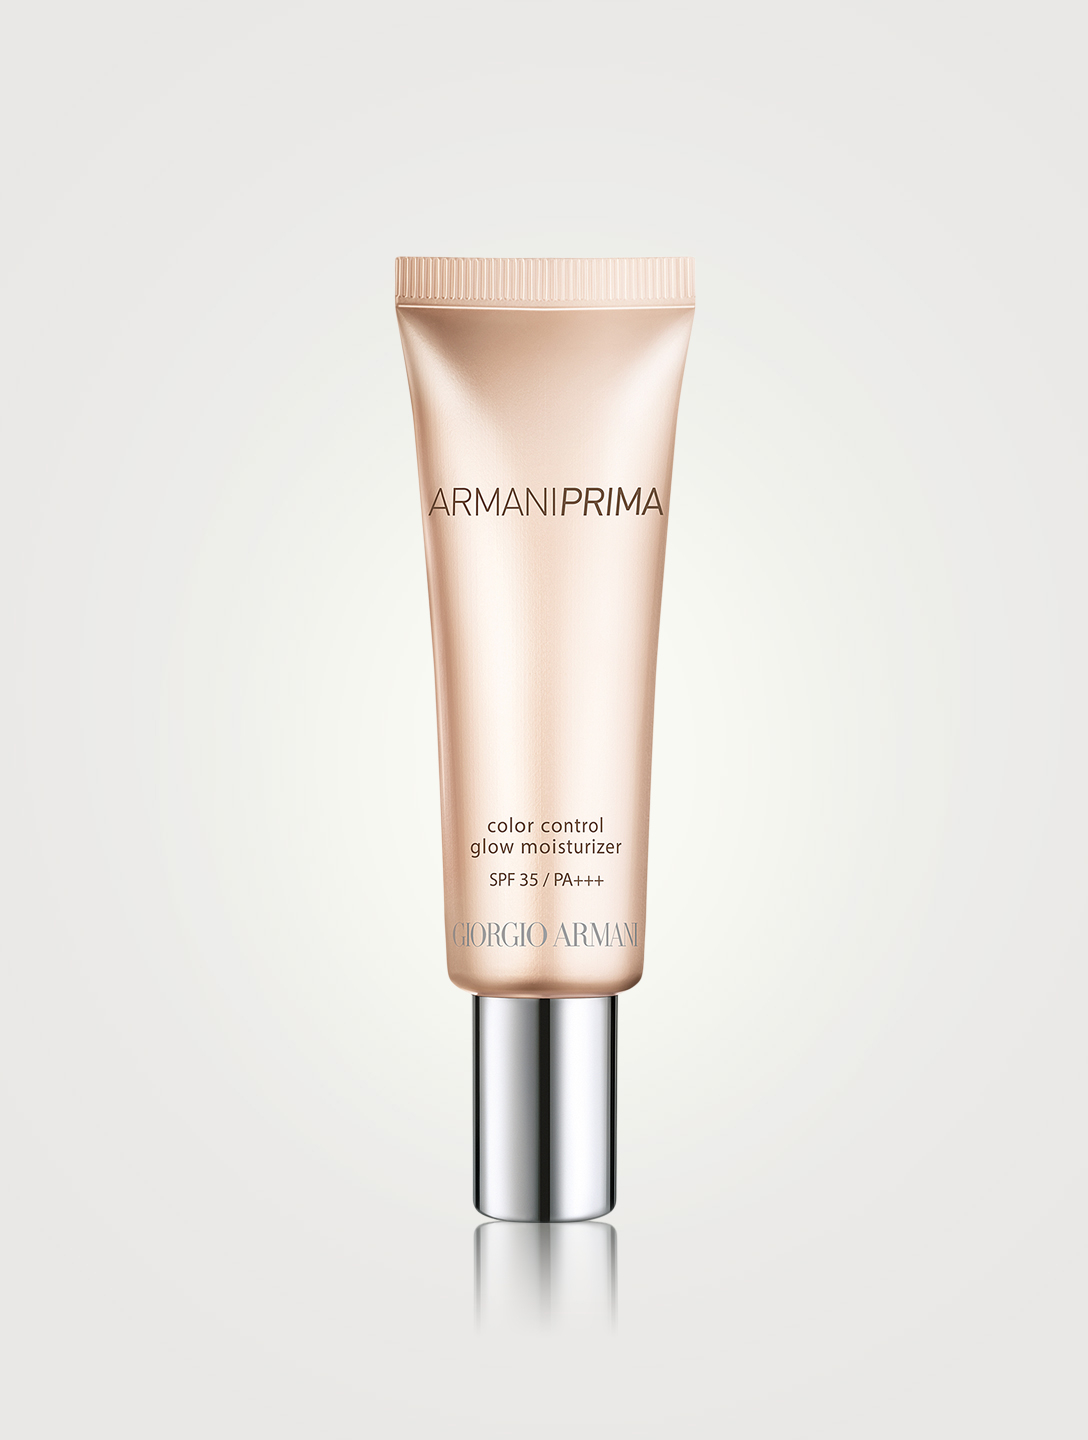 GIORGIO ARMANI Prima CC Cream Beauty Neutral